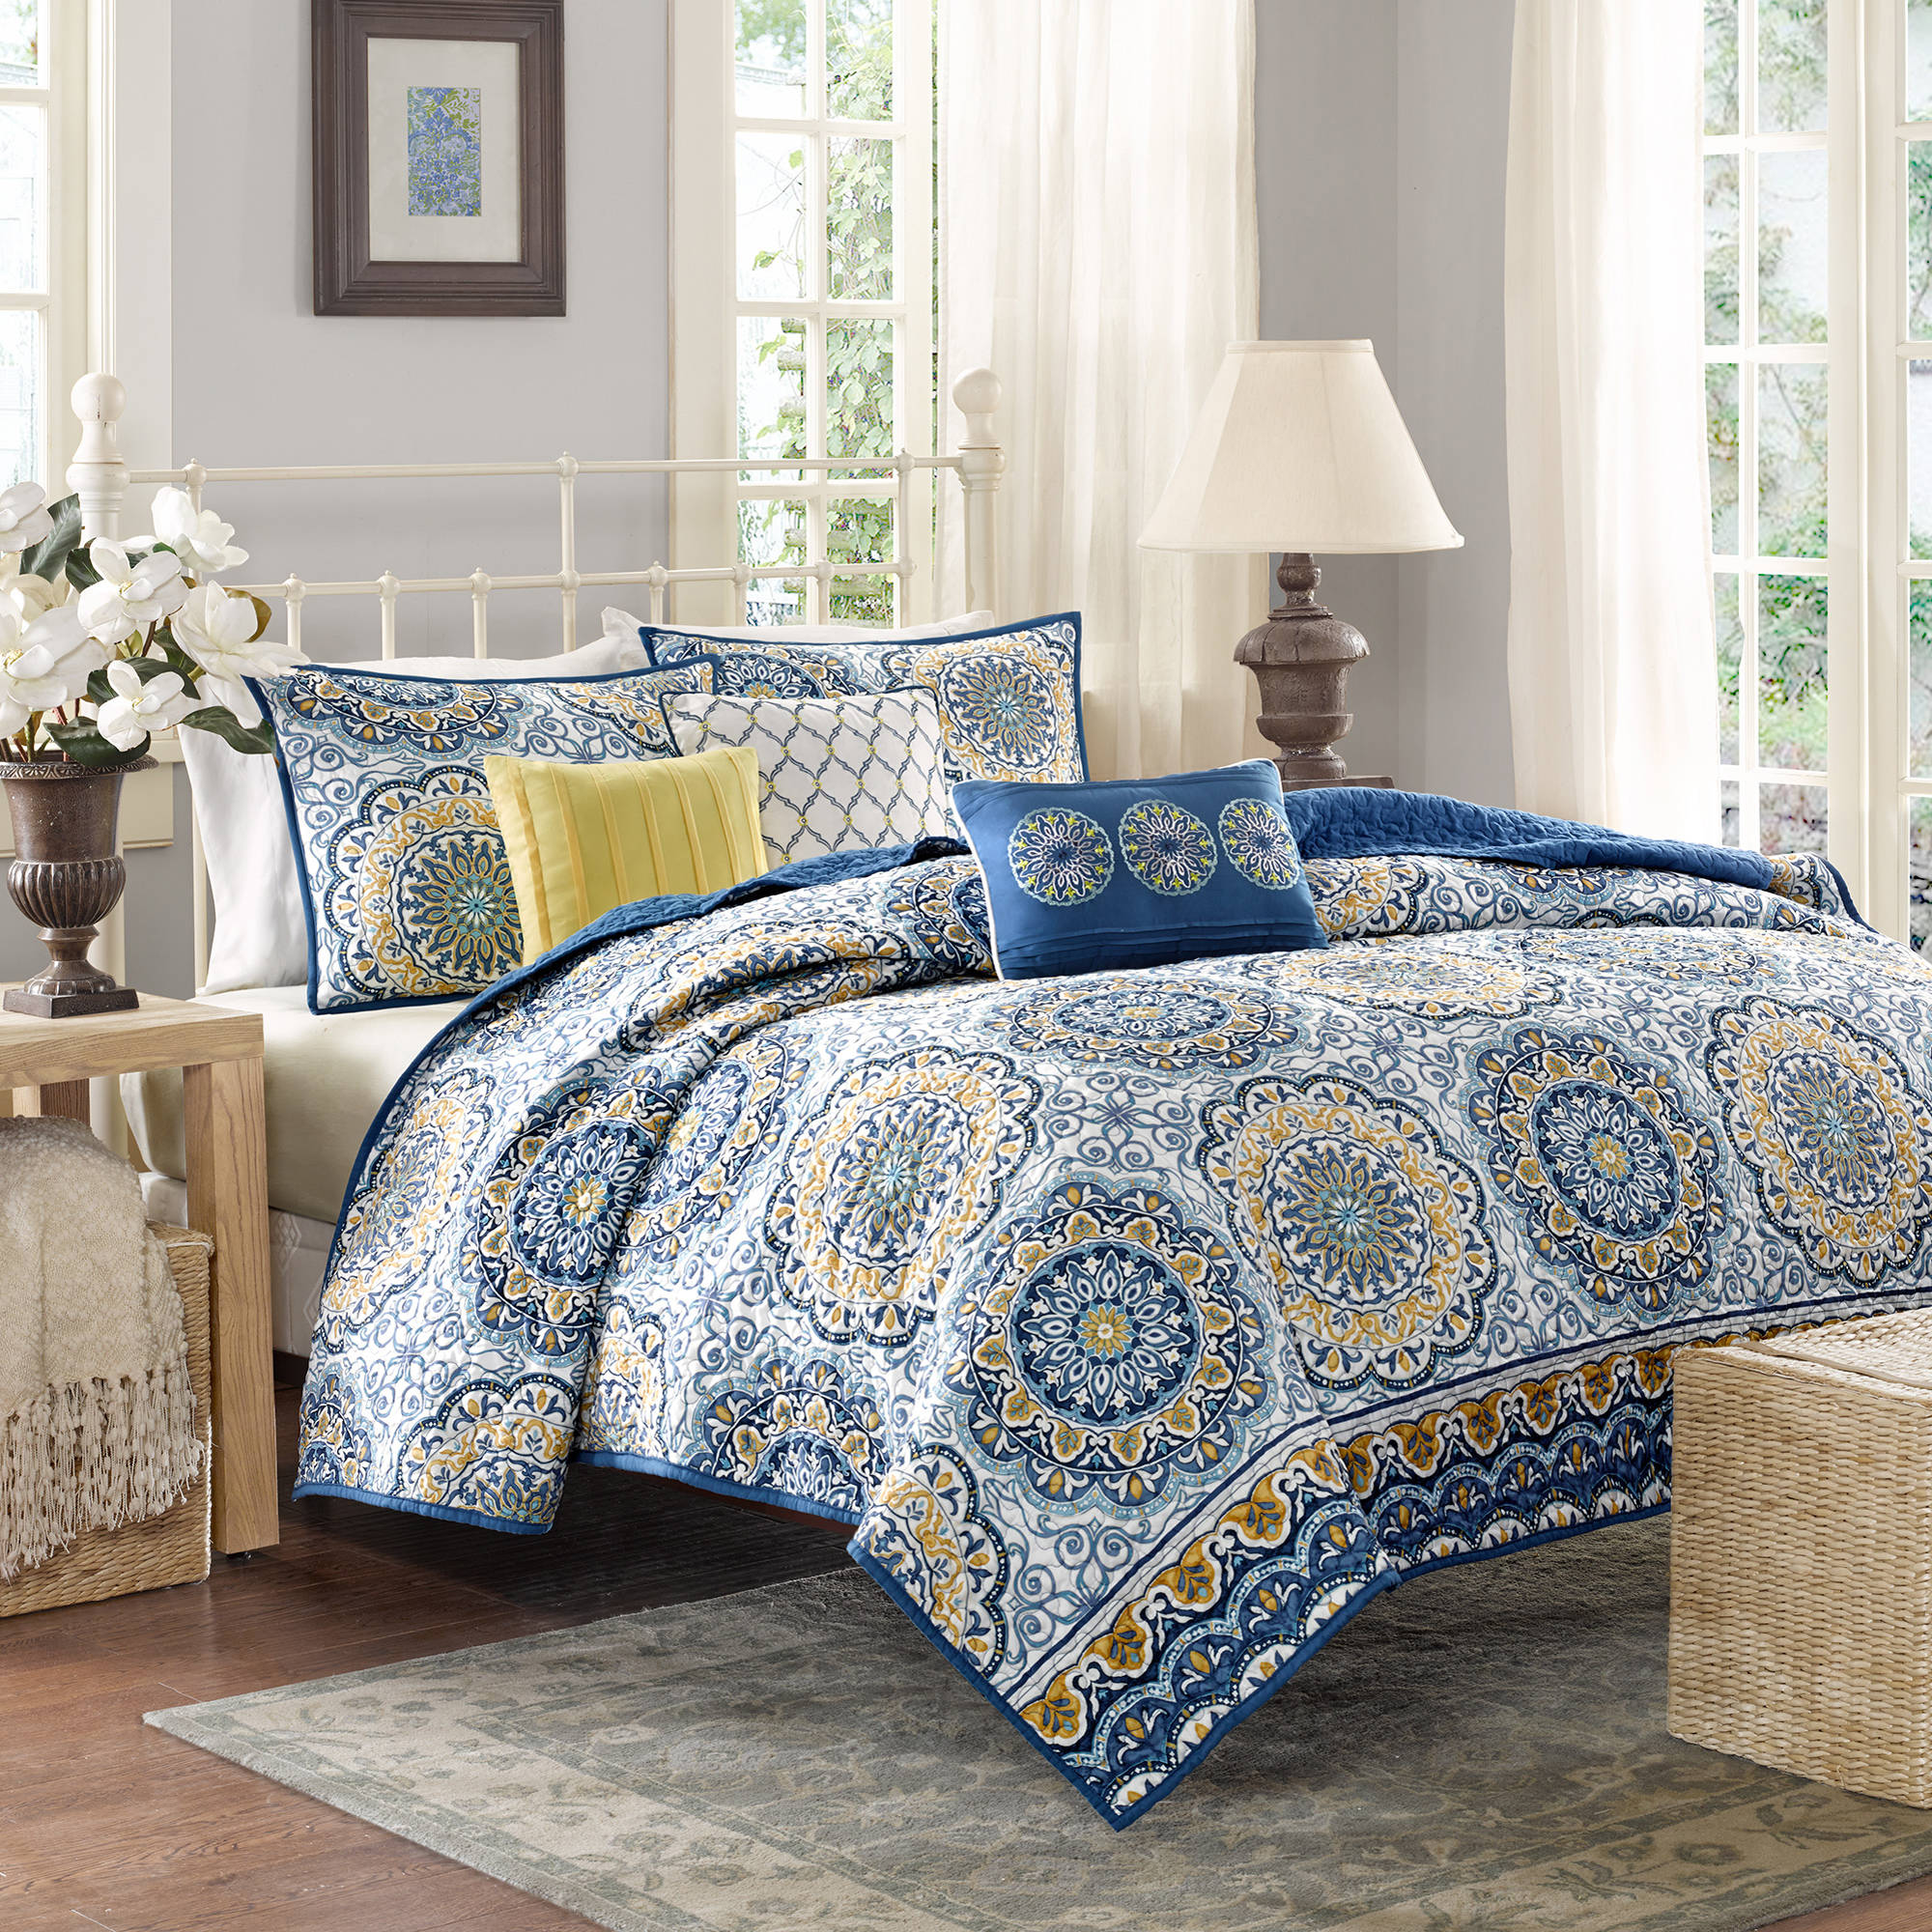 Home Essence Menara Quilted Bedding Coverlet Set | eBay : king size quilt bedding - Adamdwight.com